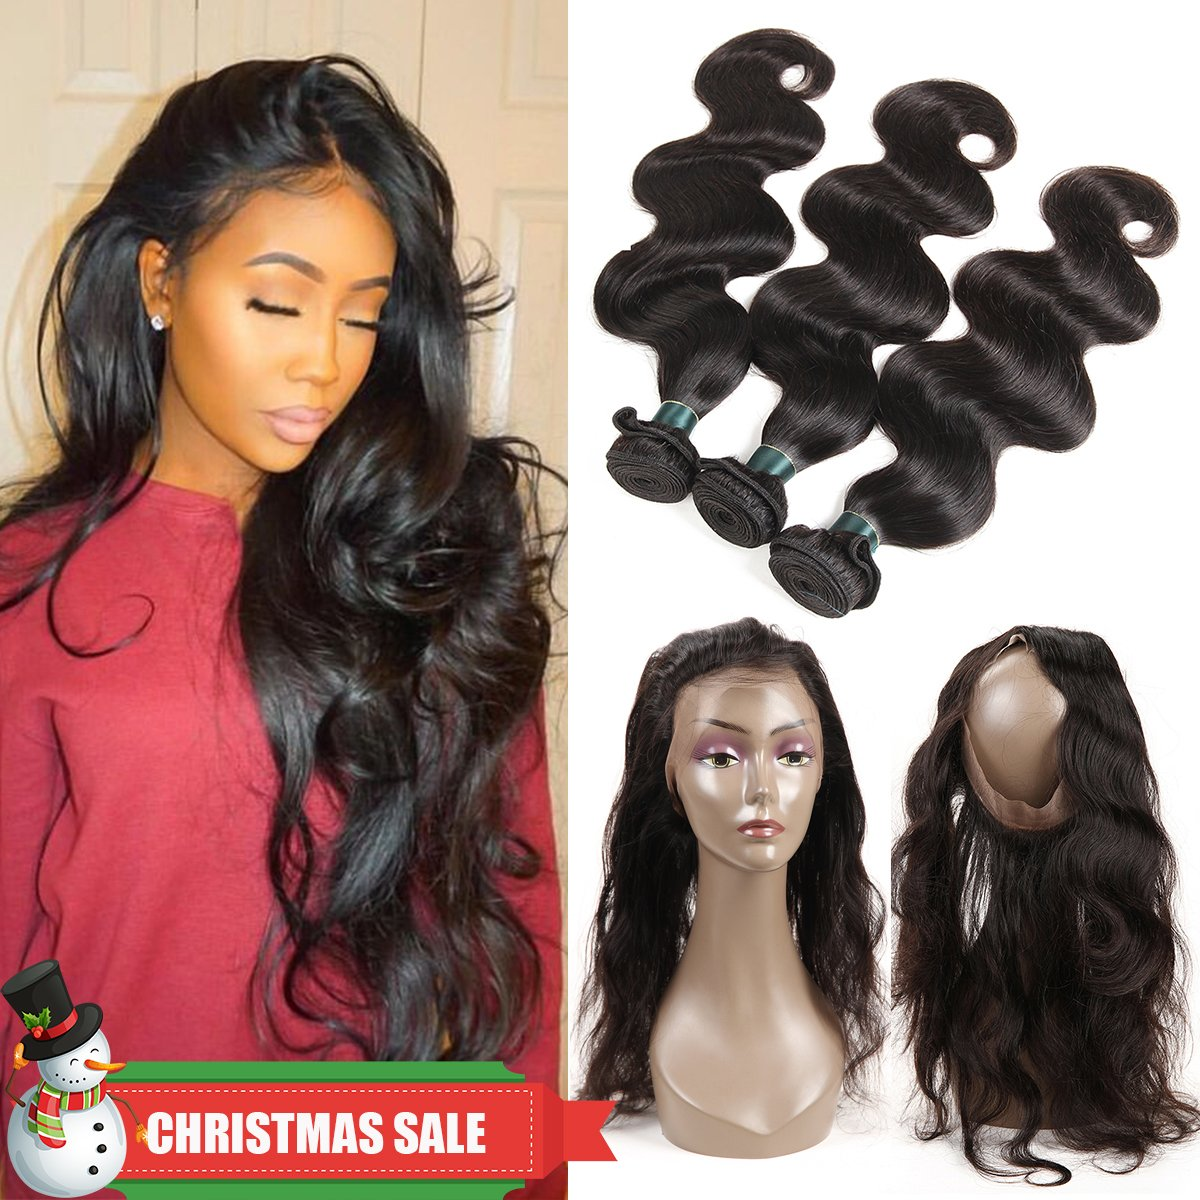 360 Lace Frontal with Bundles Pre Plucked 8A Brazilian Body Wave Bunldes with 360 Lace Frontal Closure 100% Human Hair Extensions with Frontal Closure Baby Hair (14 16 18+12 360Frontal)